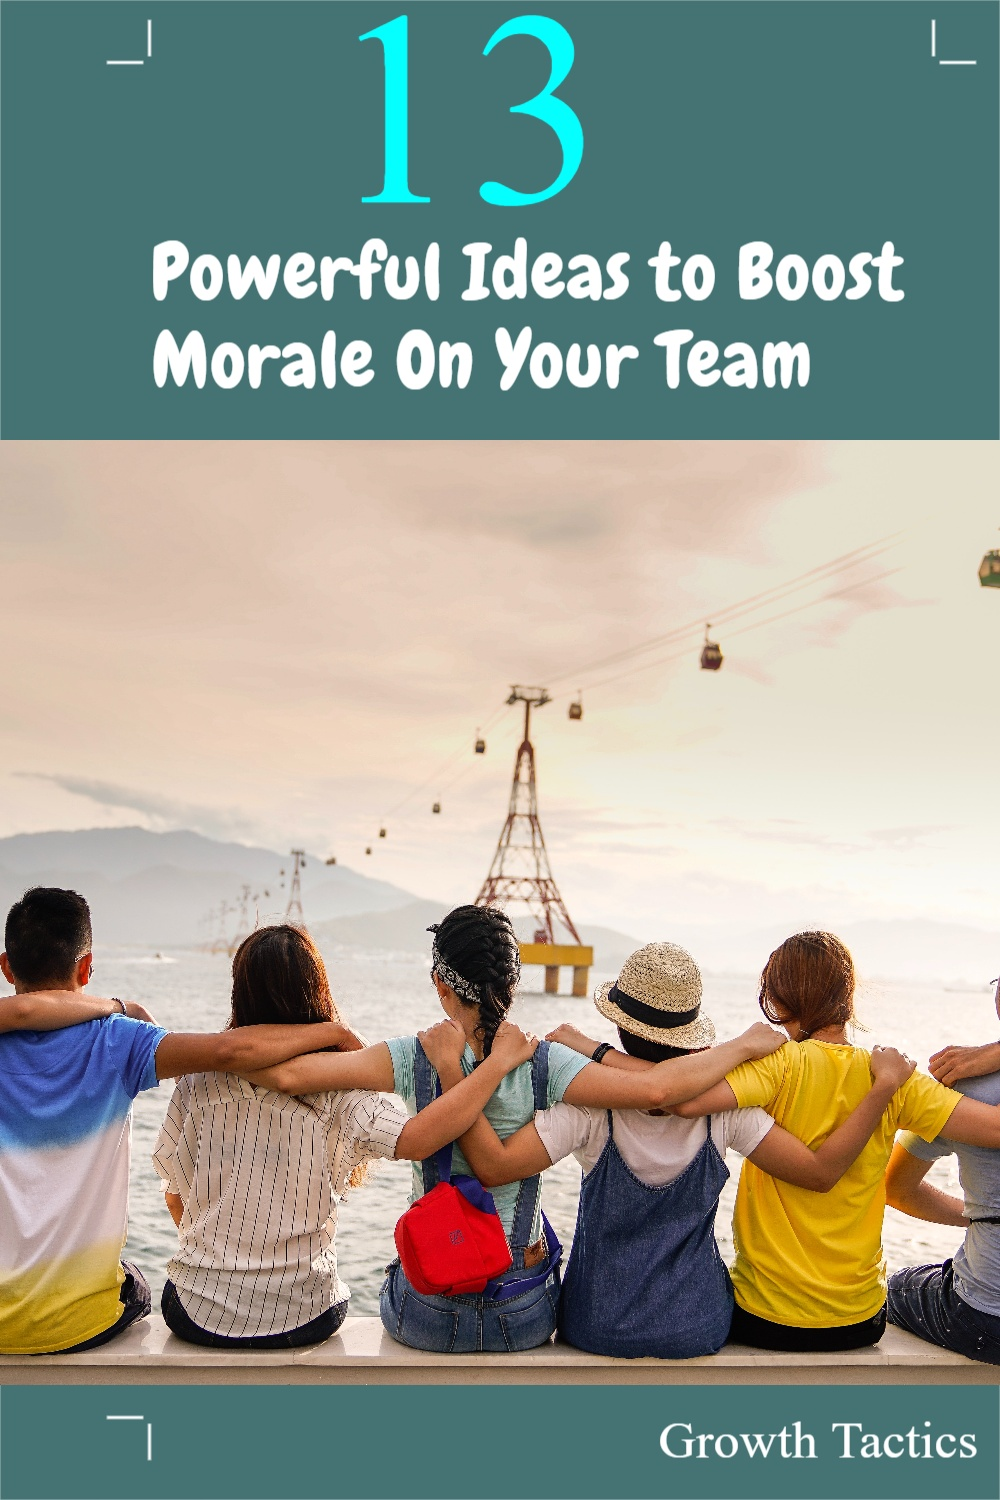 13 Powerful Ideas to Boost Morale On Your Team